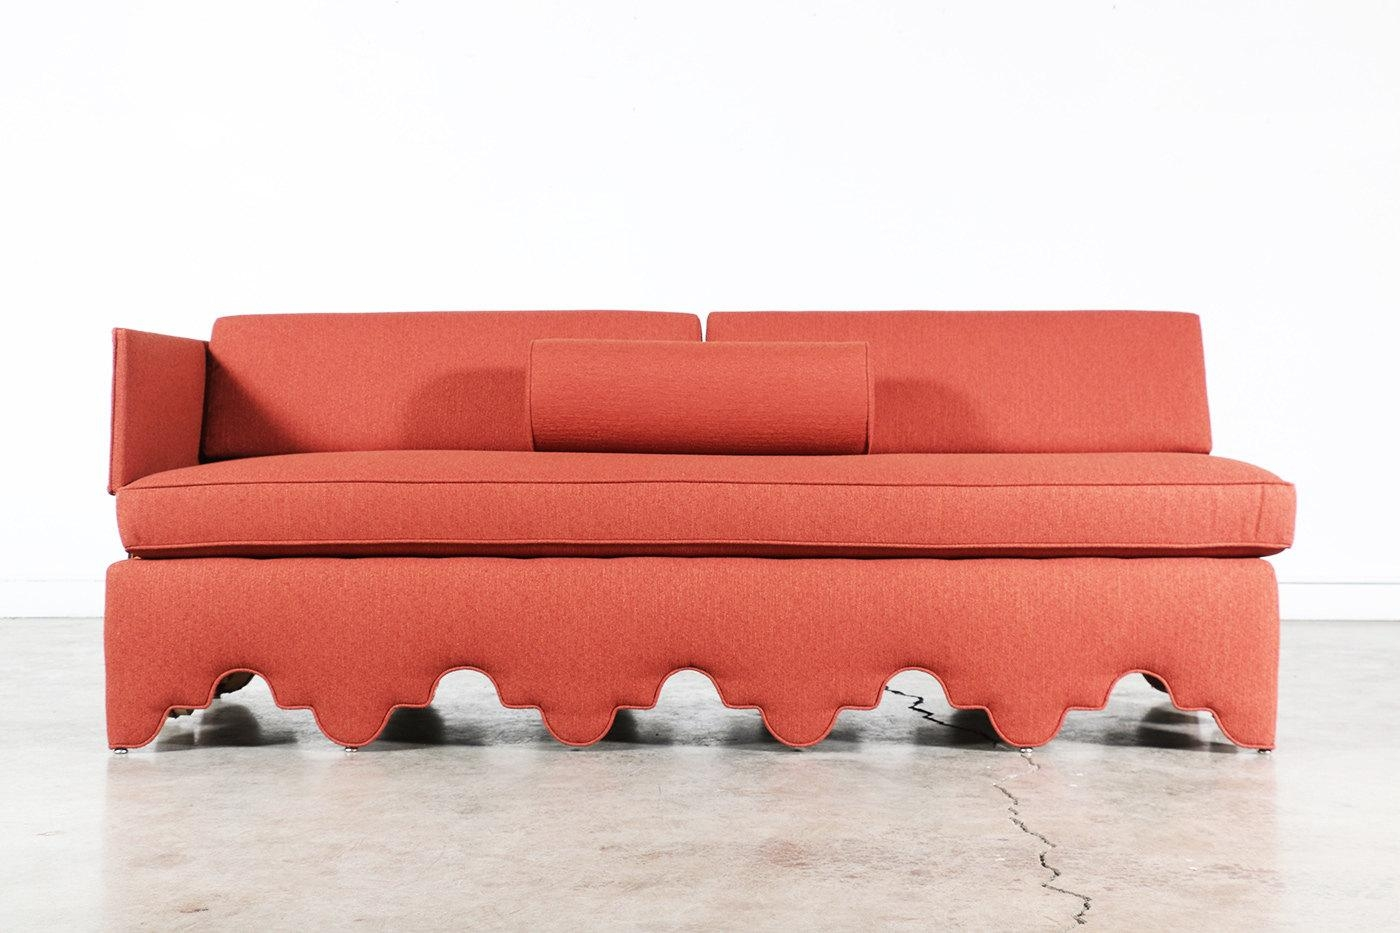 Etsy Furniture Shops: 7 Best Stores To Check Out Now – Curbed With Regard To Etsy Sofas (Image 3 of 20)